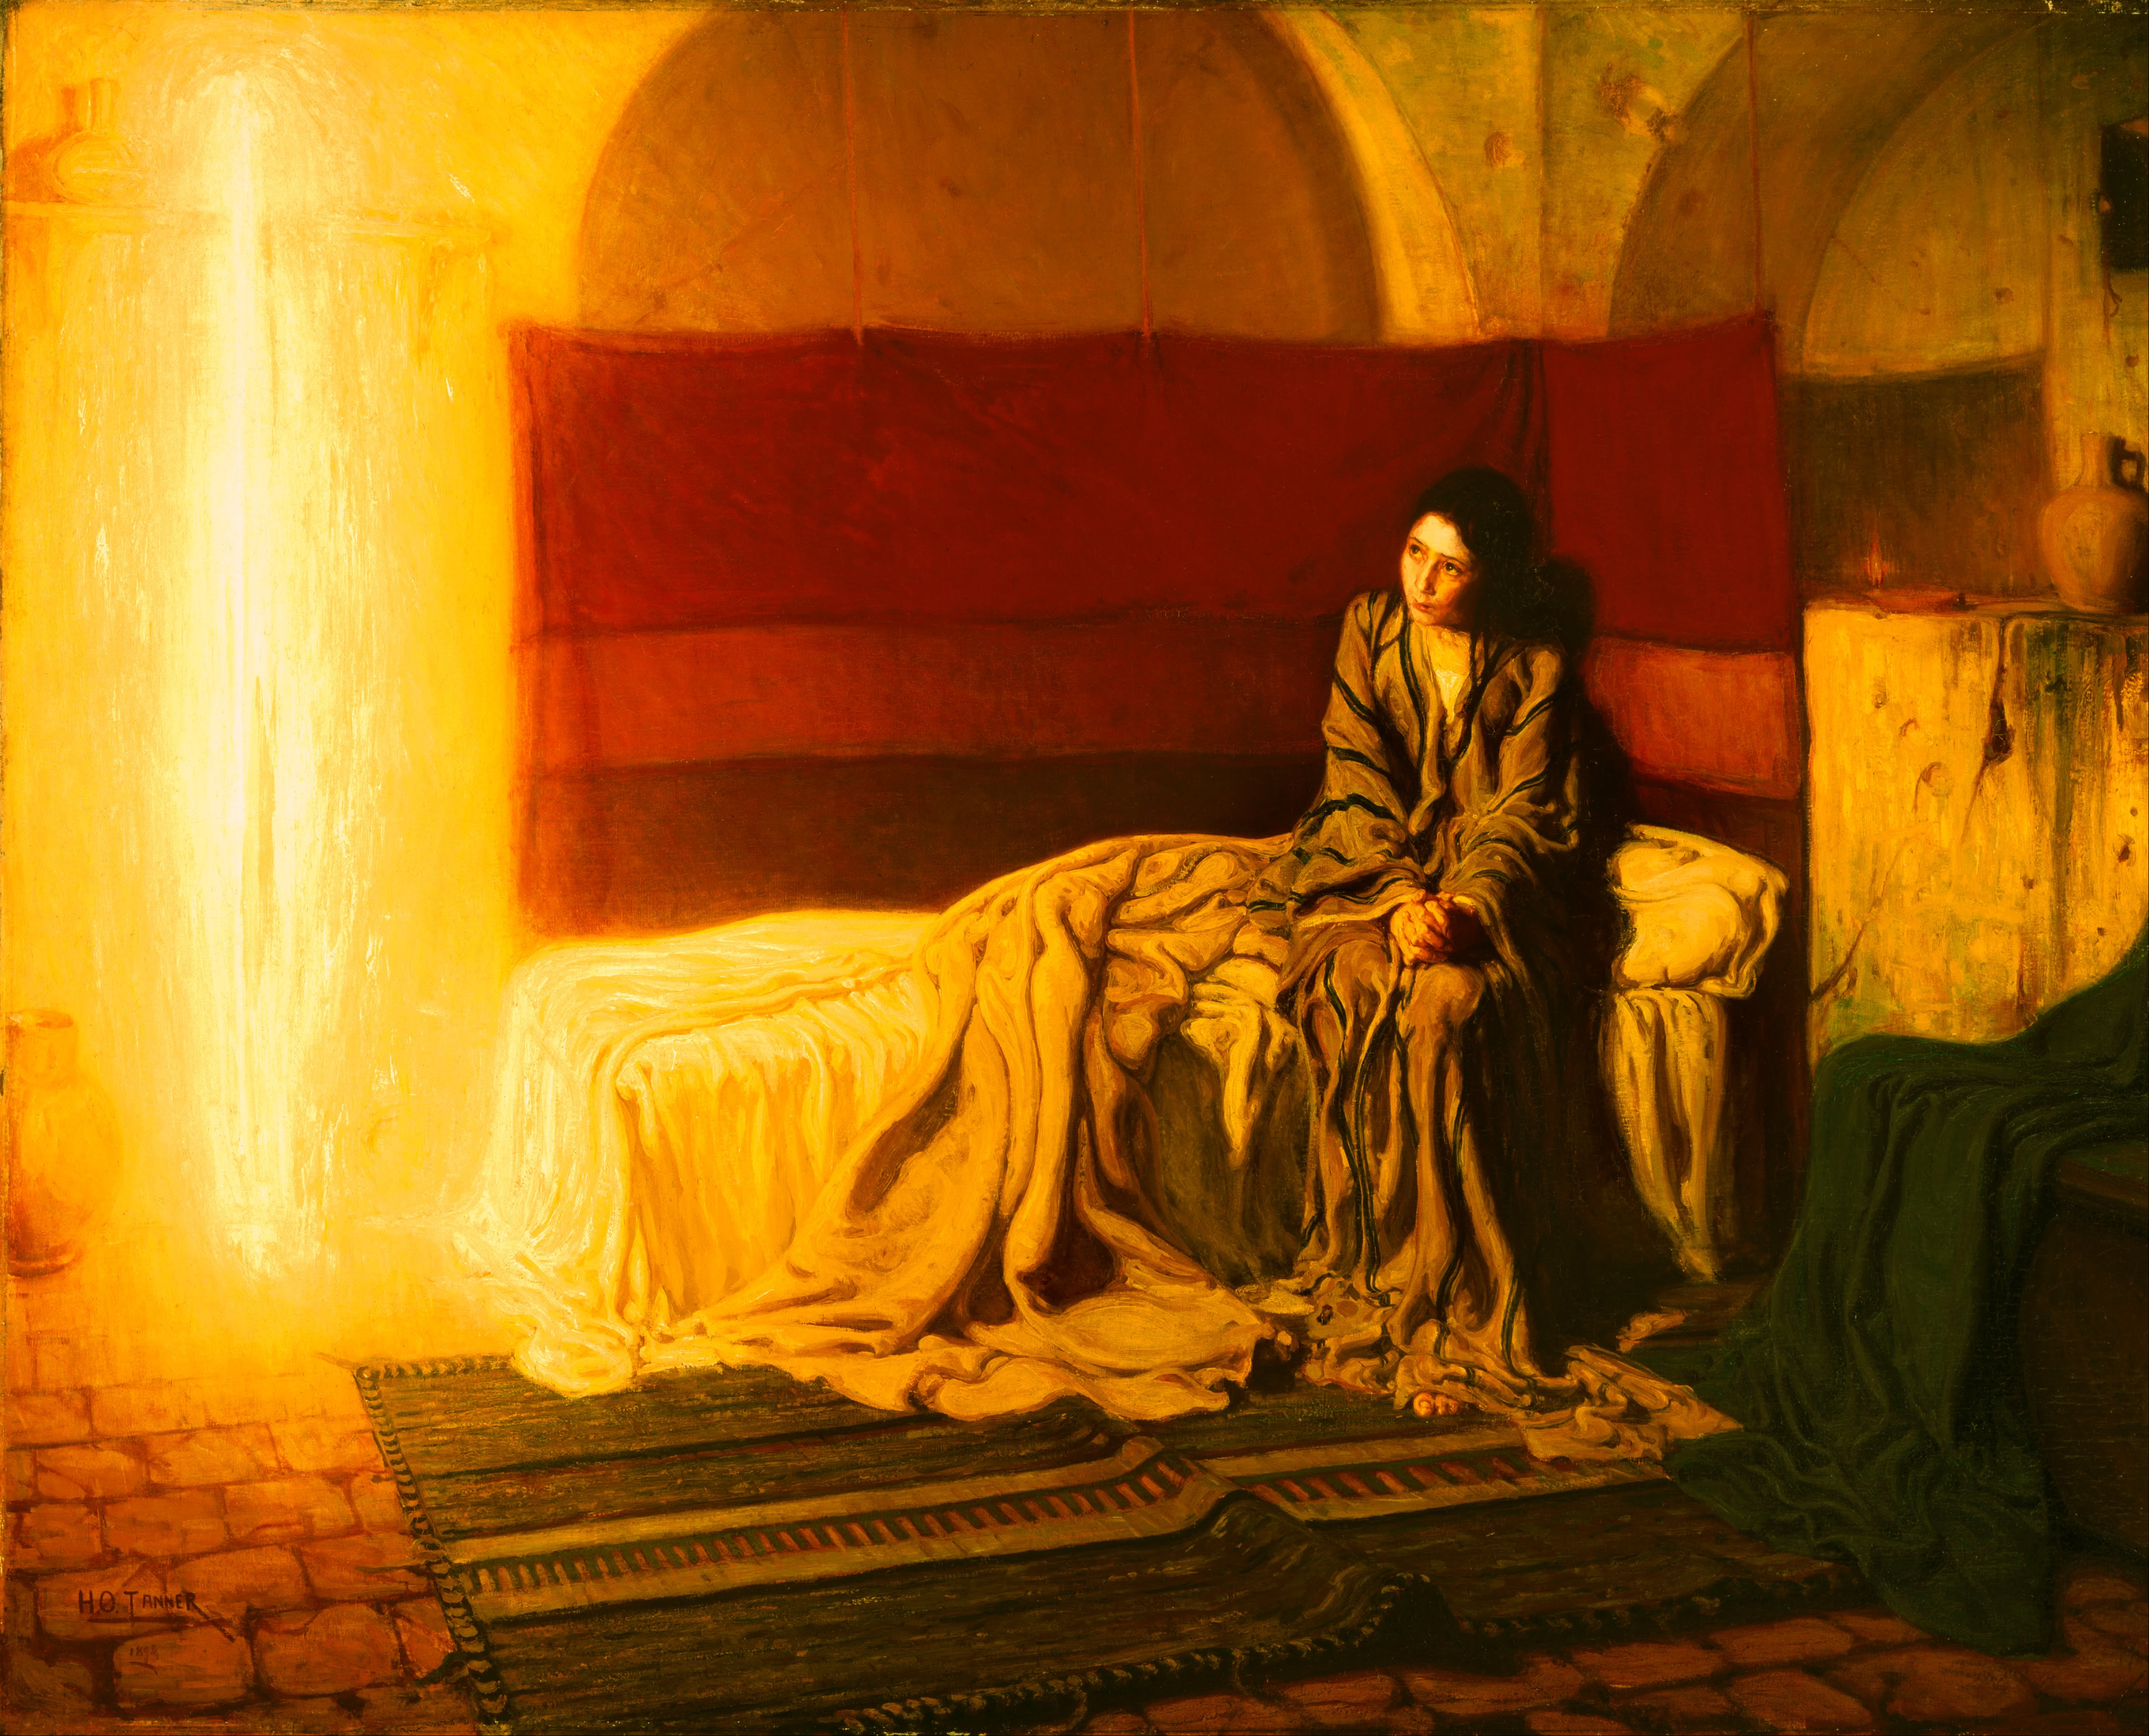 The Annunciation by Henry Tanner